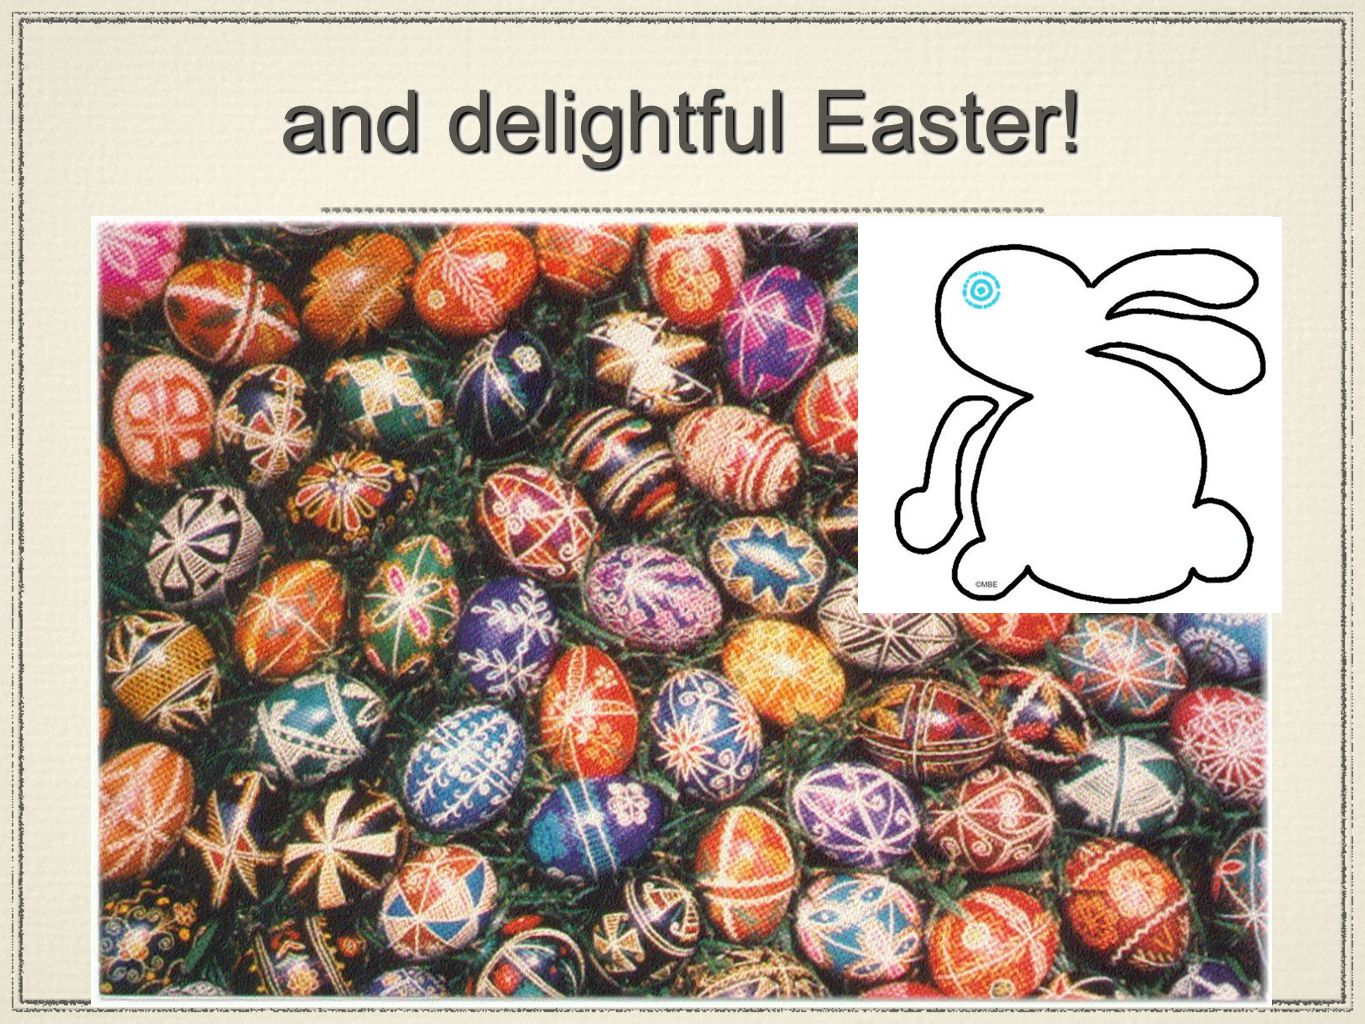 and delightful Easter!